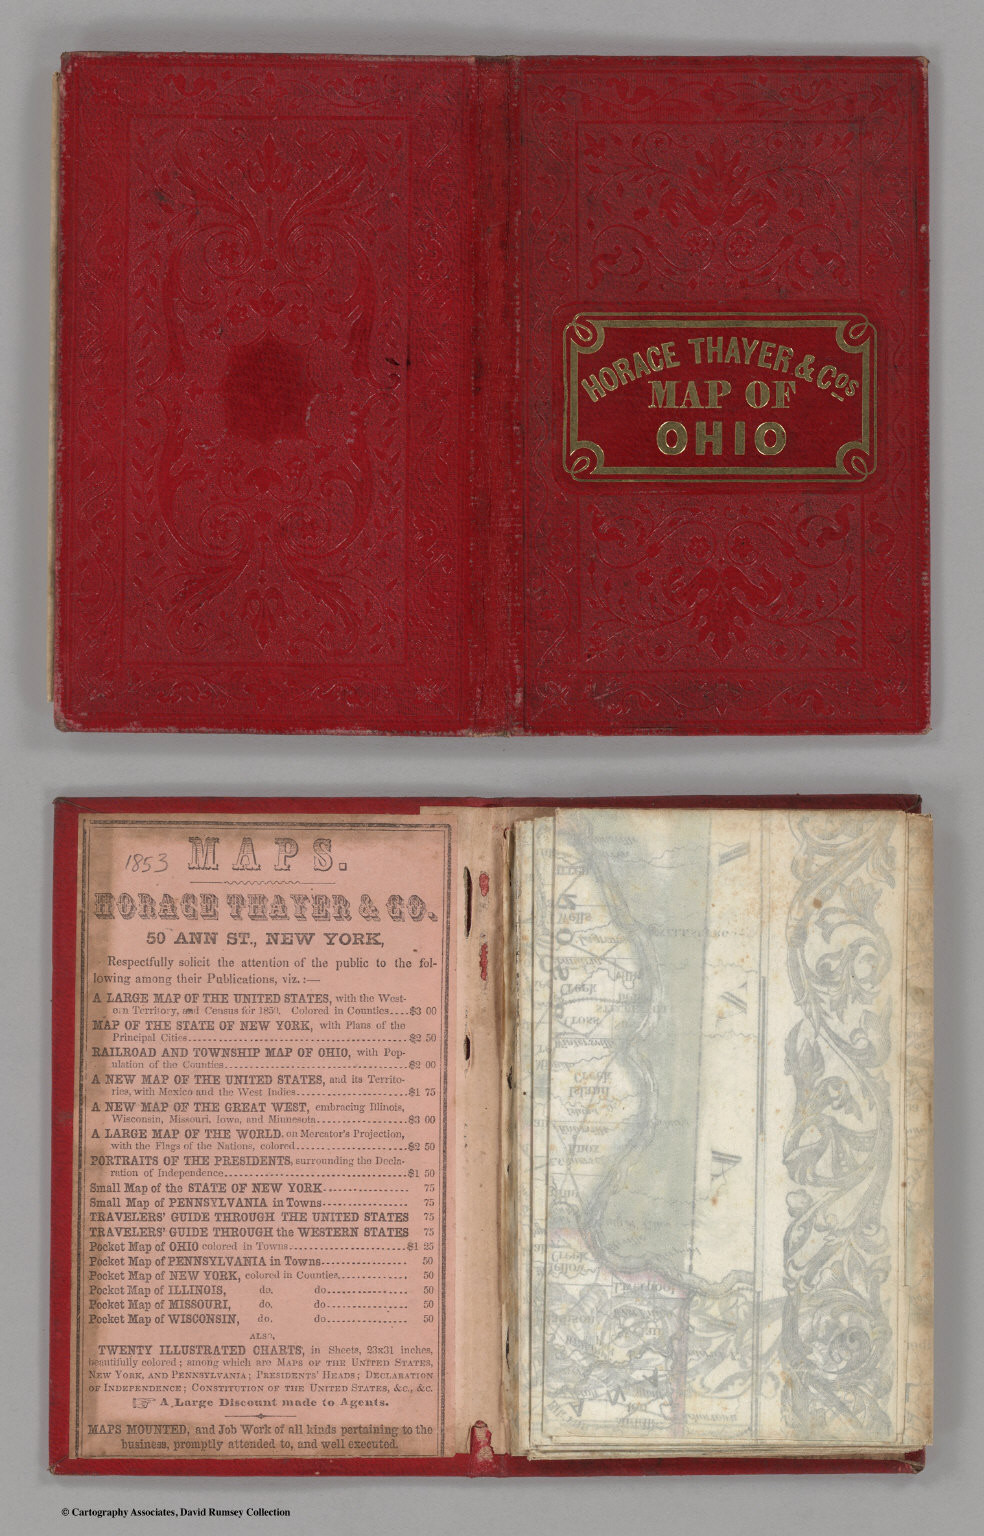 Covers to) Railroad & Township Map Of Ohio. Published By Horacethayer township